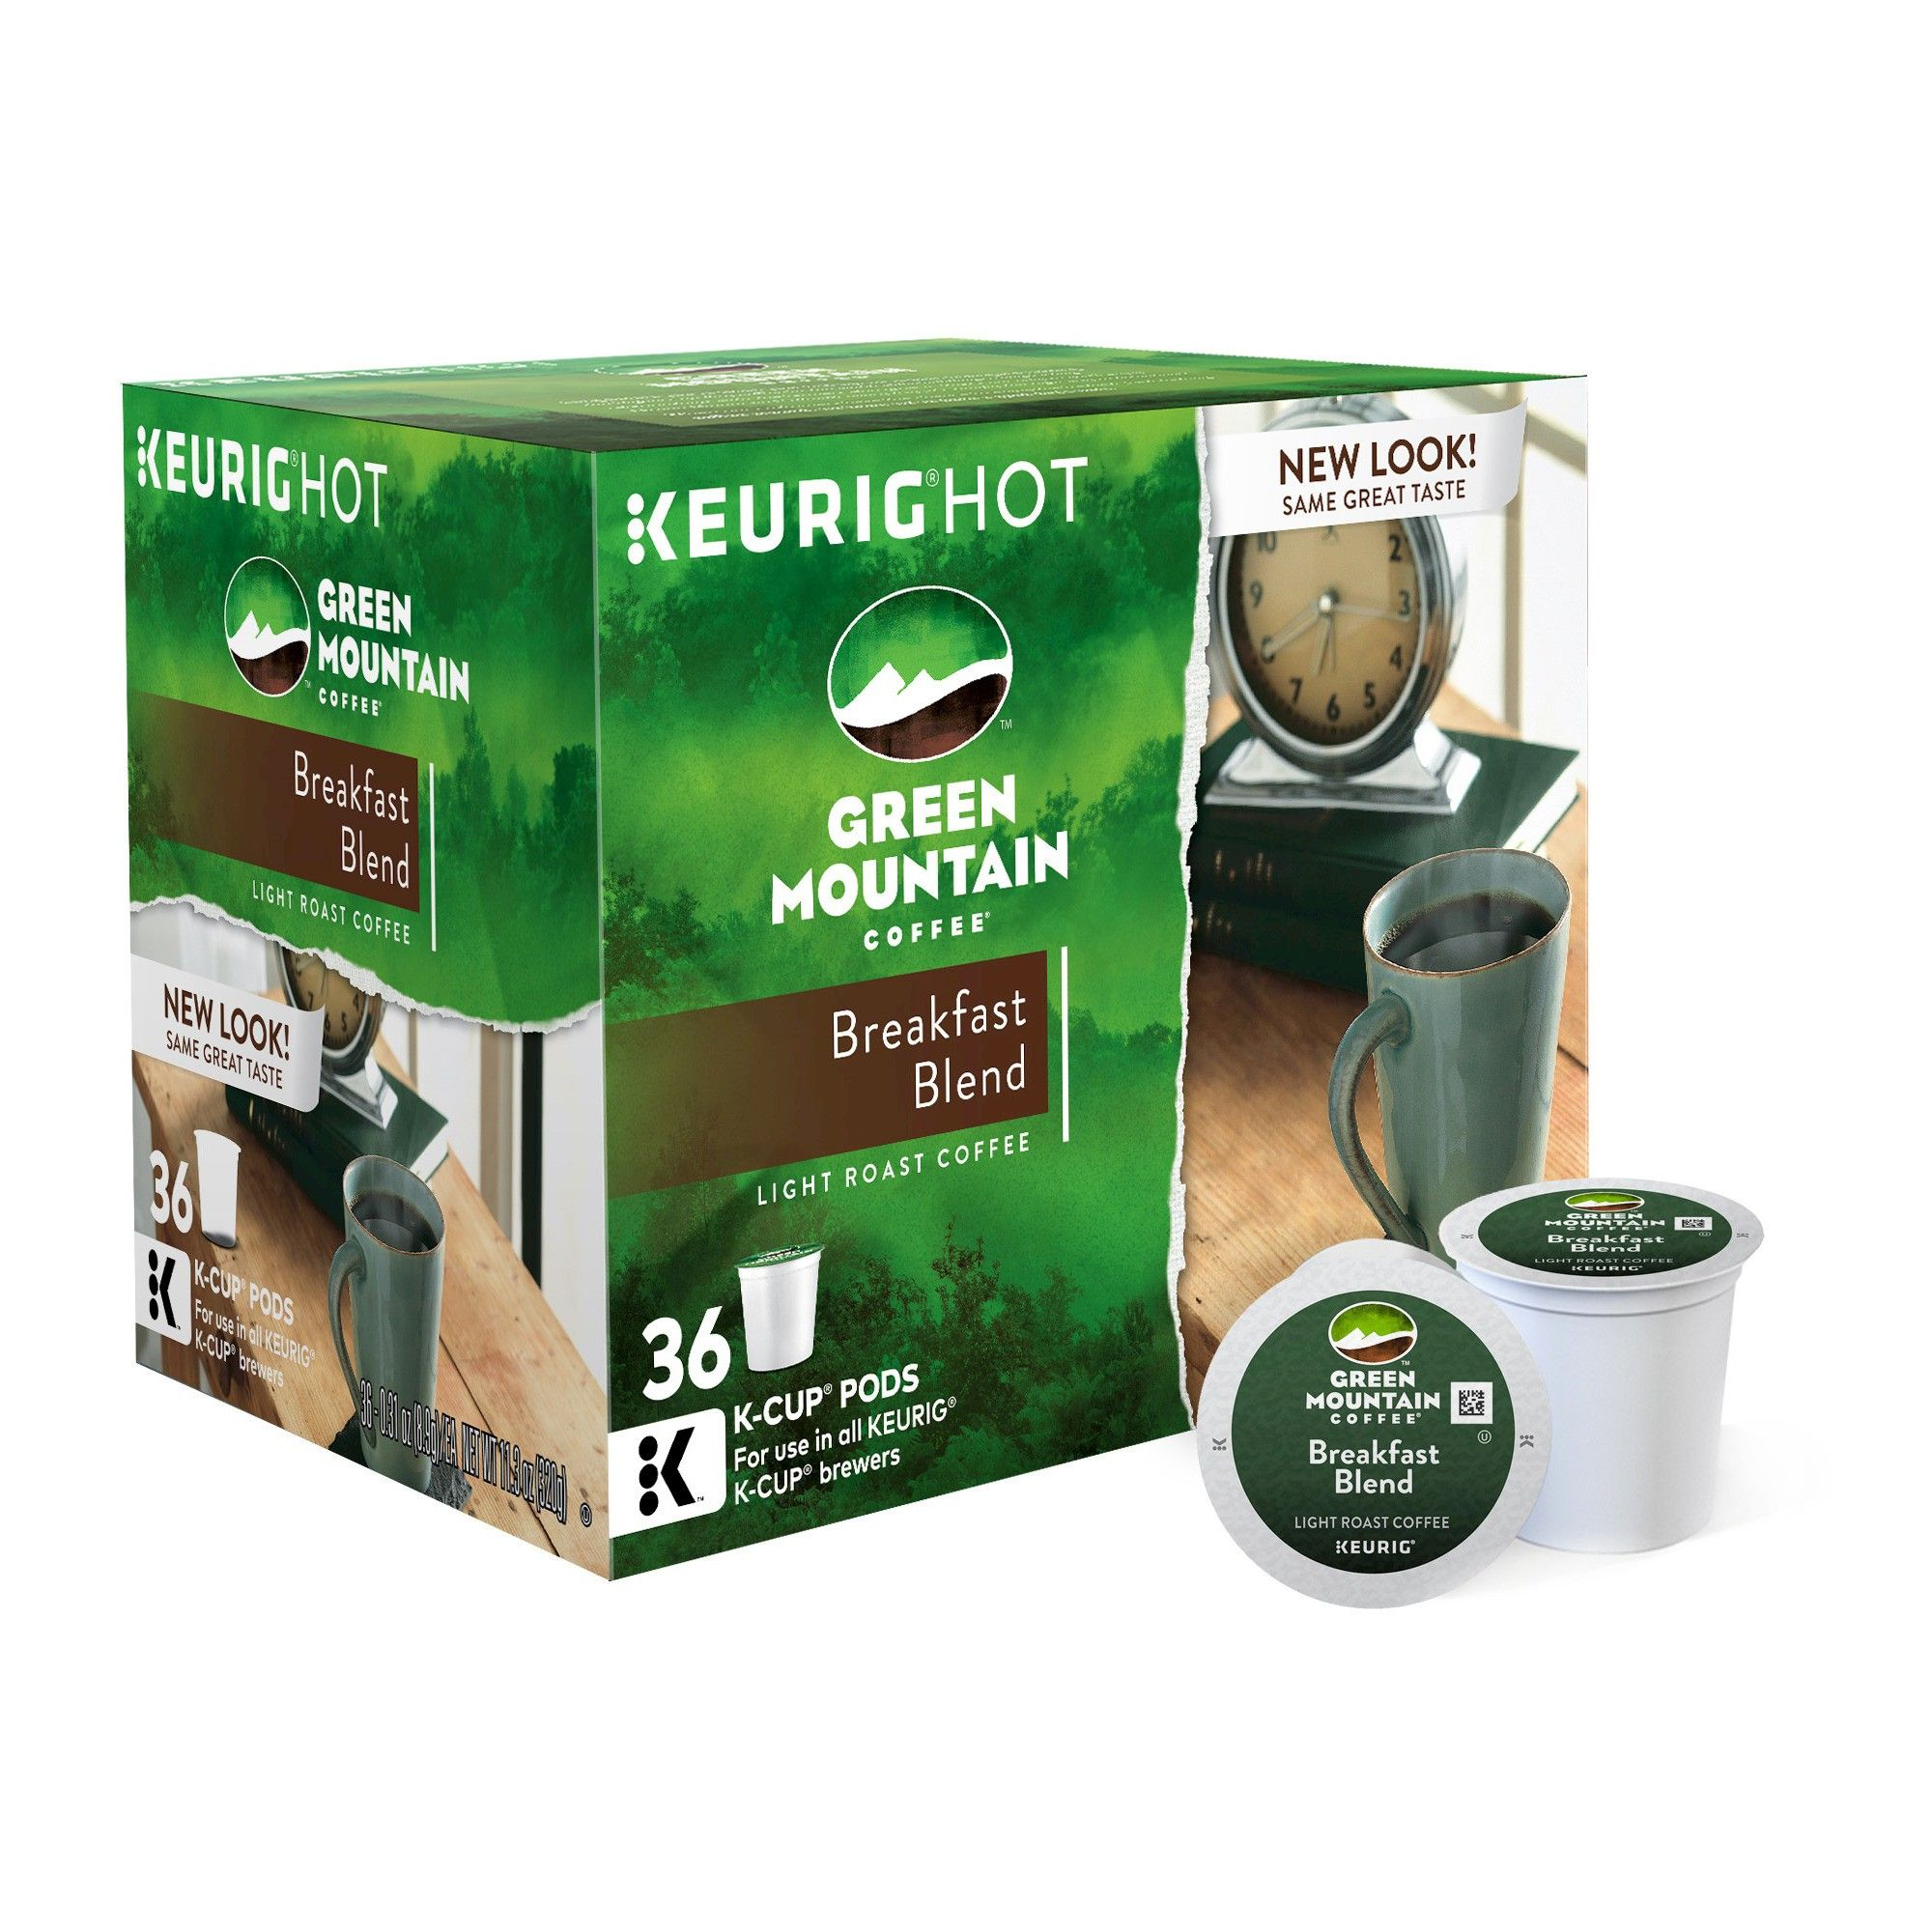 Green Mountain Breakfast Blend Light Roast Coffee KCup